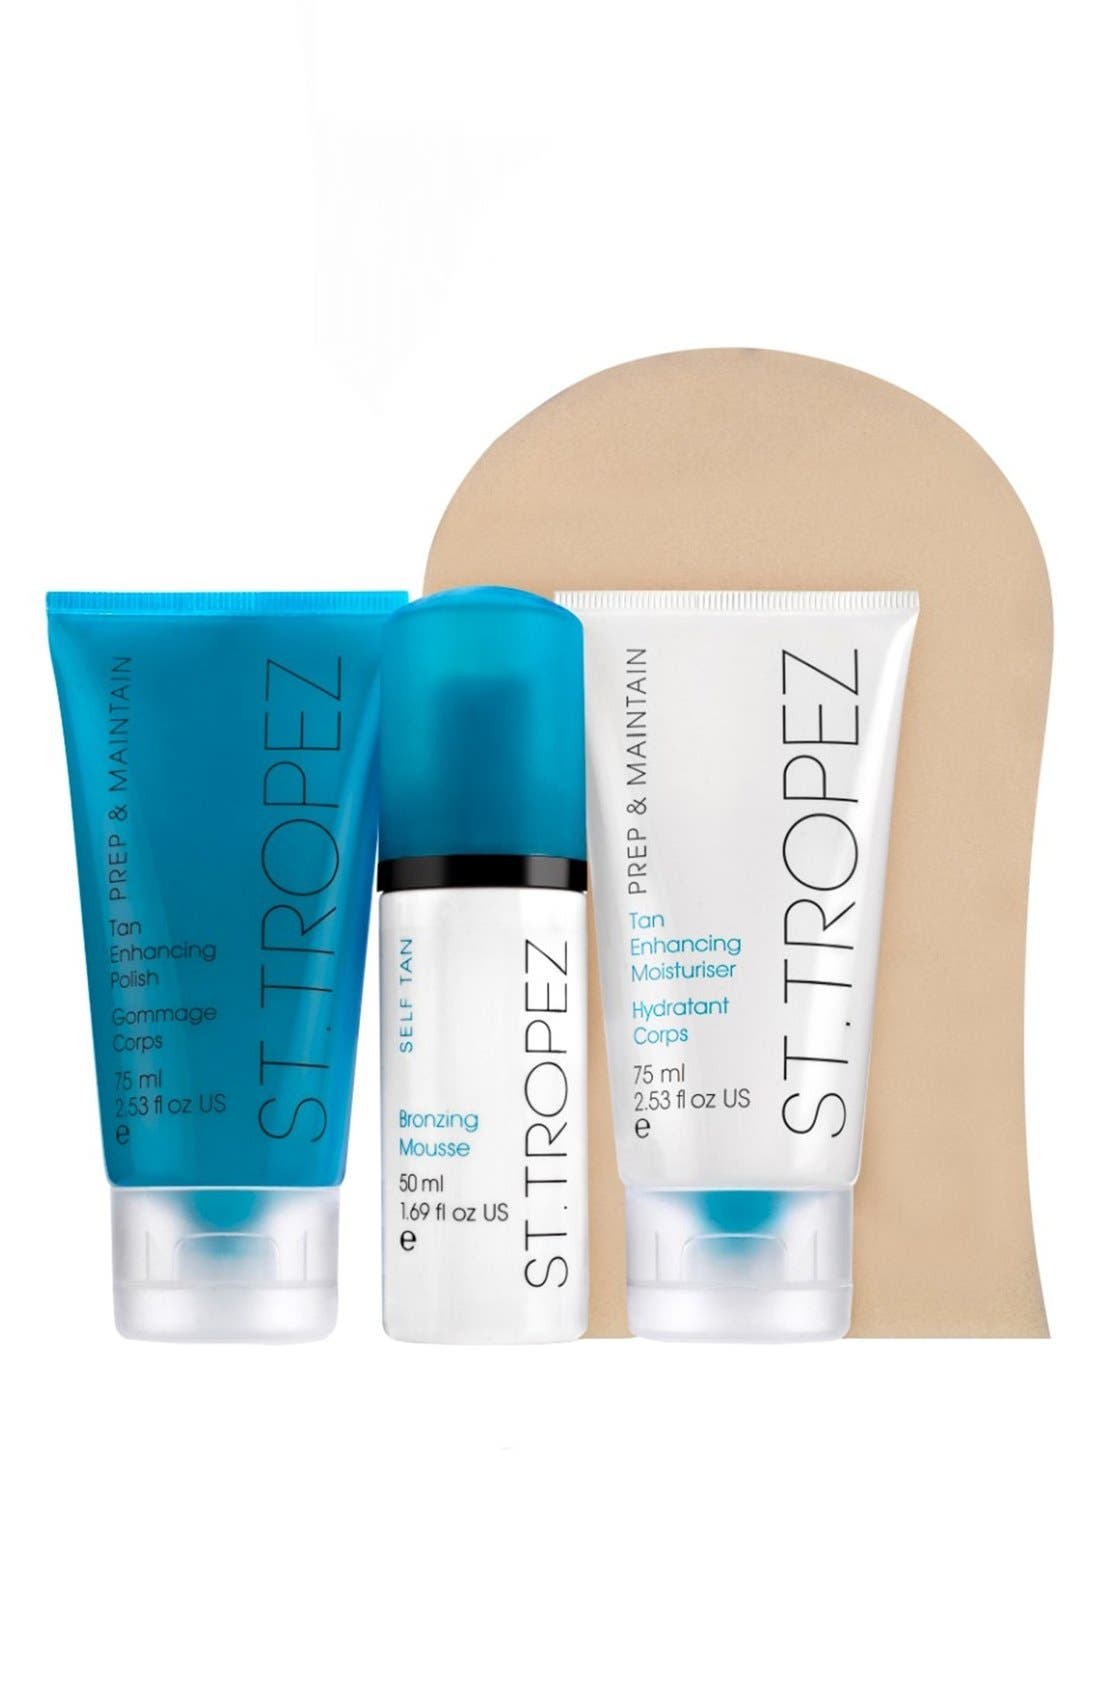 St. Tropez Self Tan Starter Kit (Limited Edition)